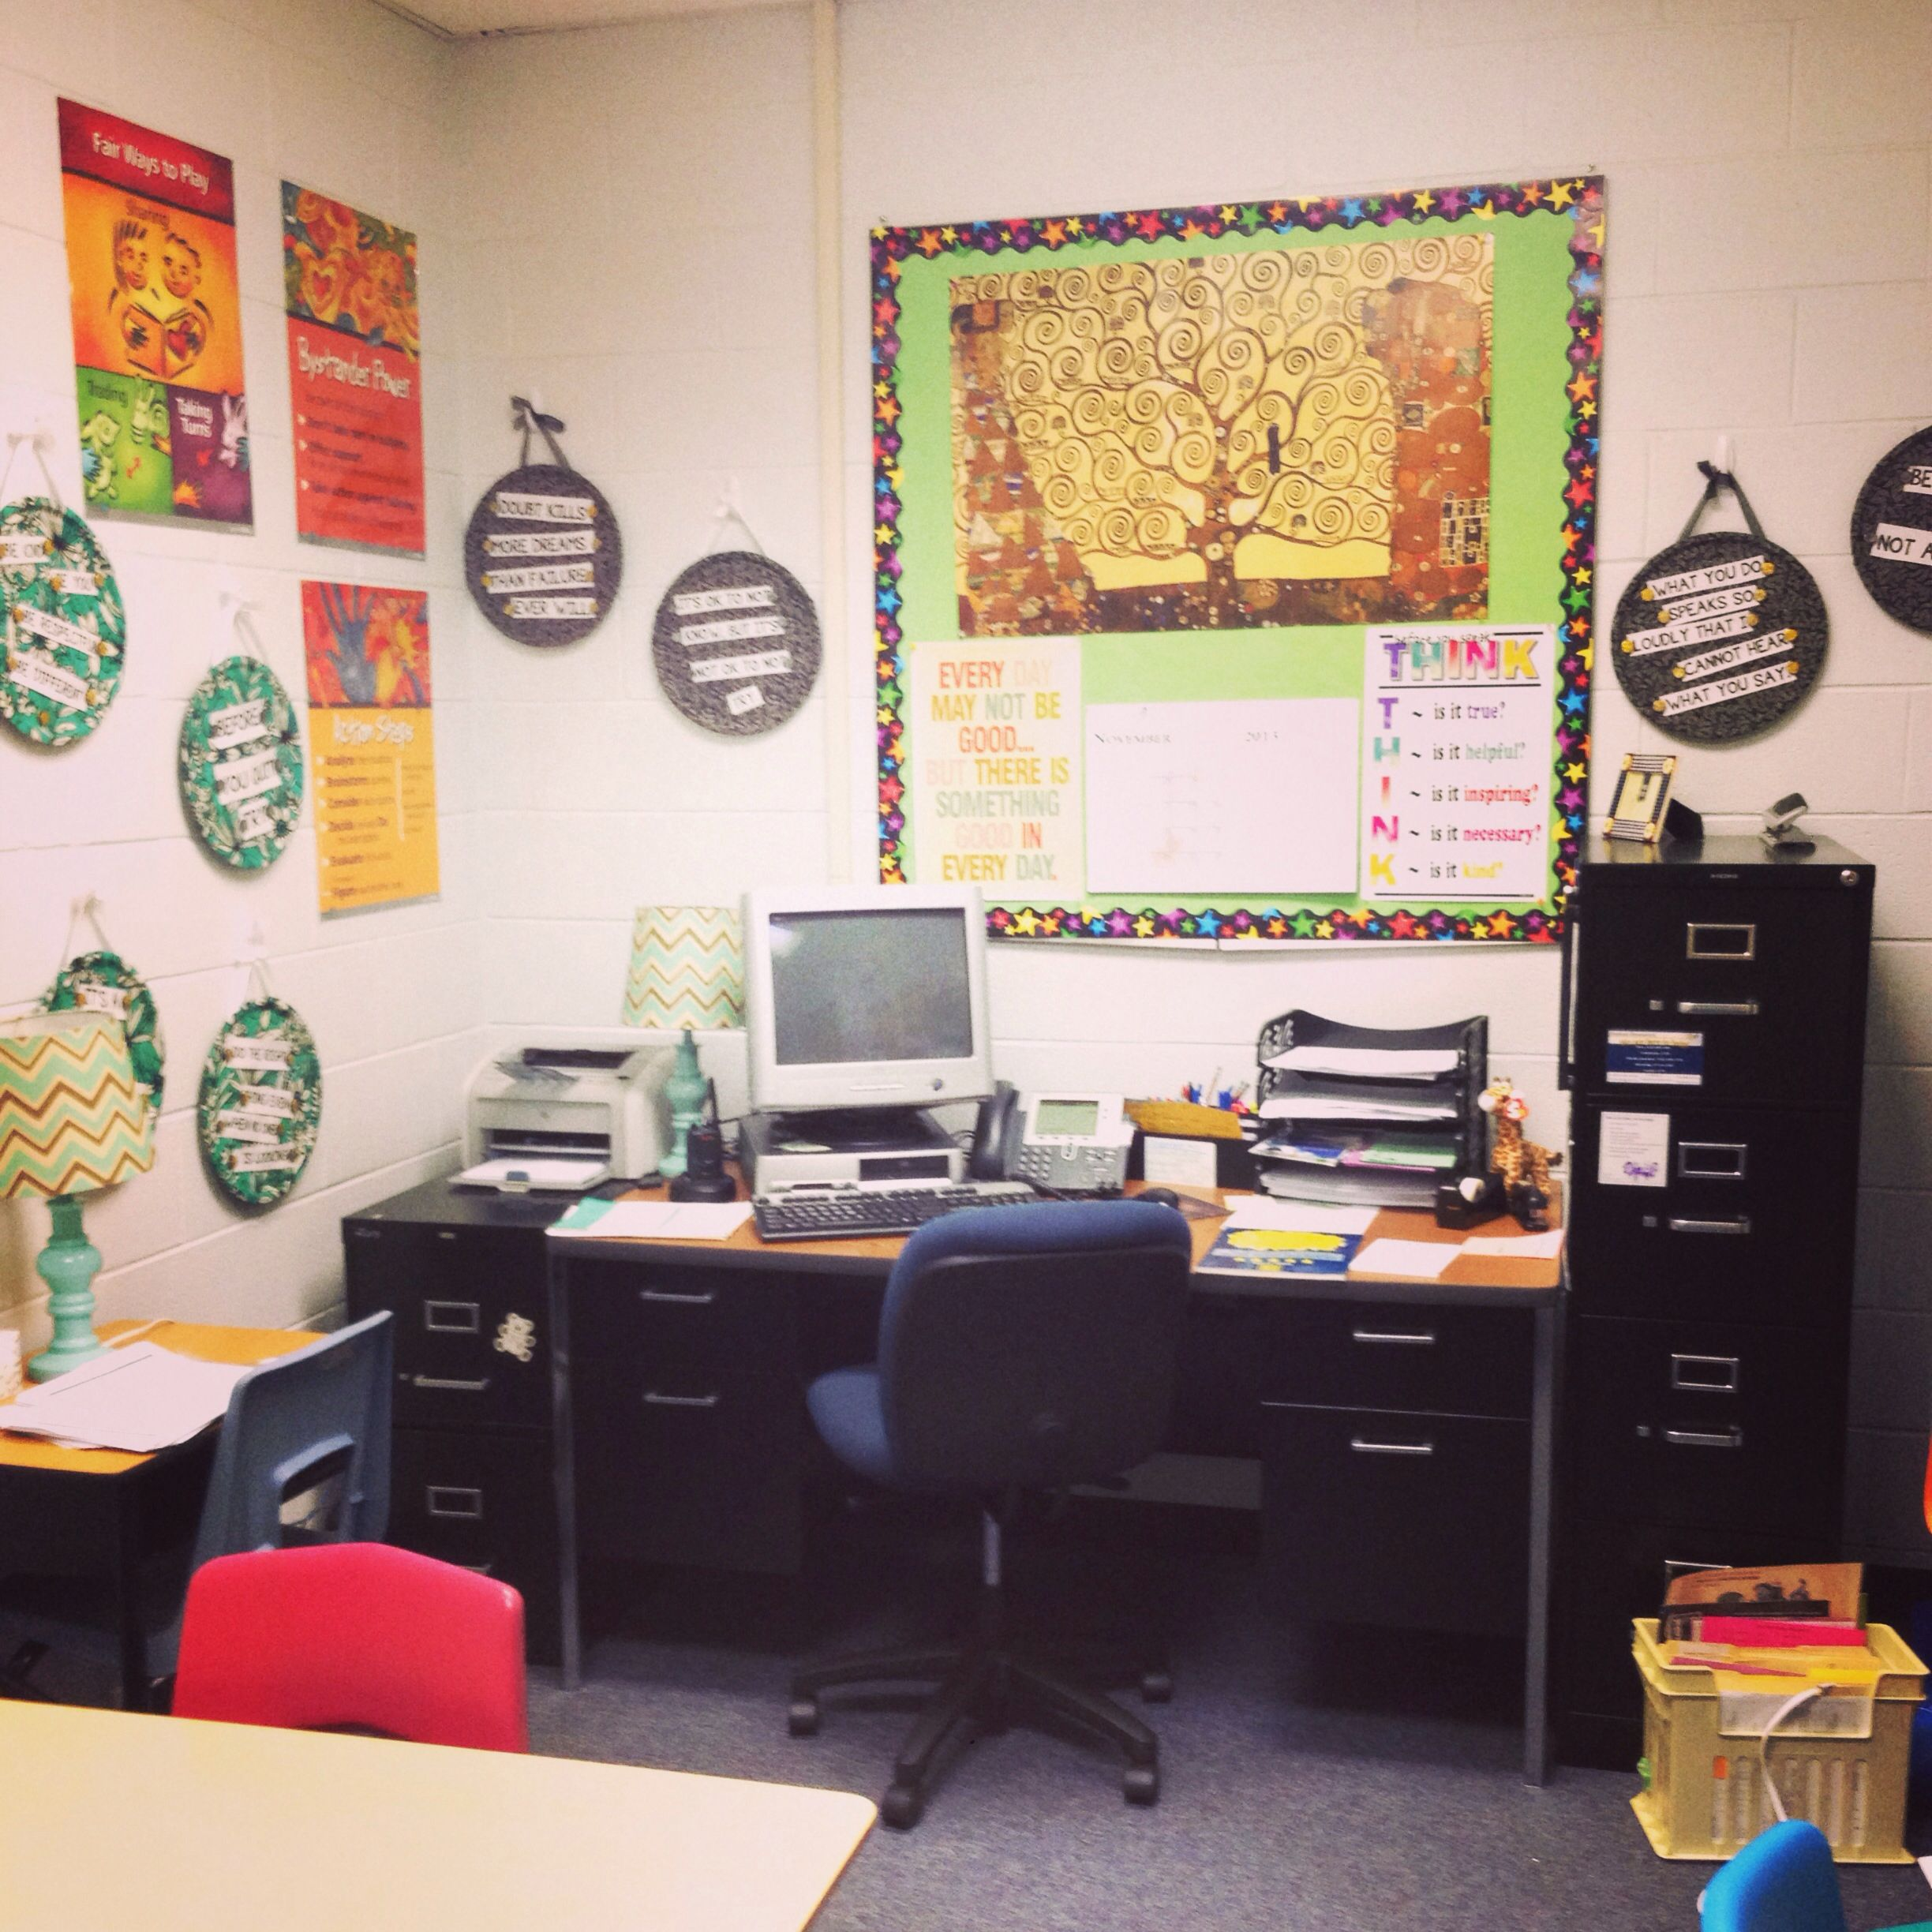 Decoration ideas for school social work offices school - Work office decorating ideas pictures ...